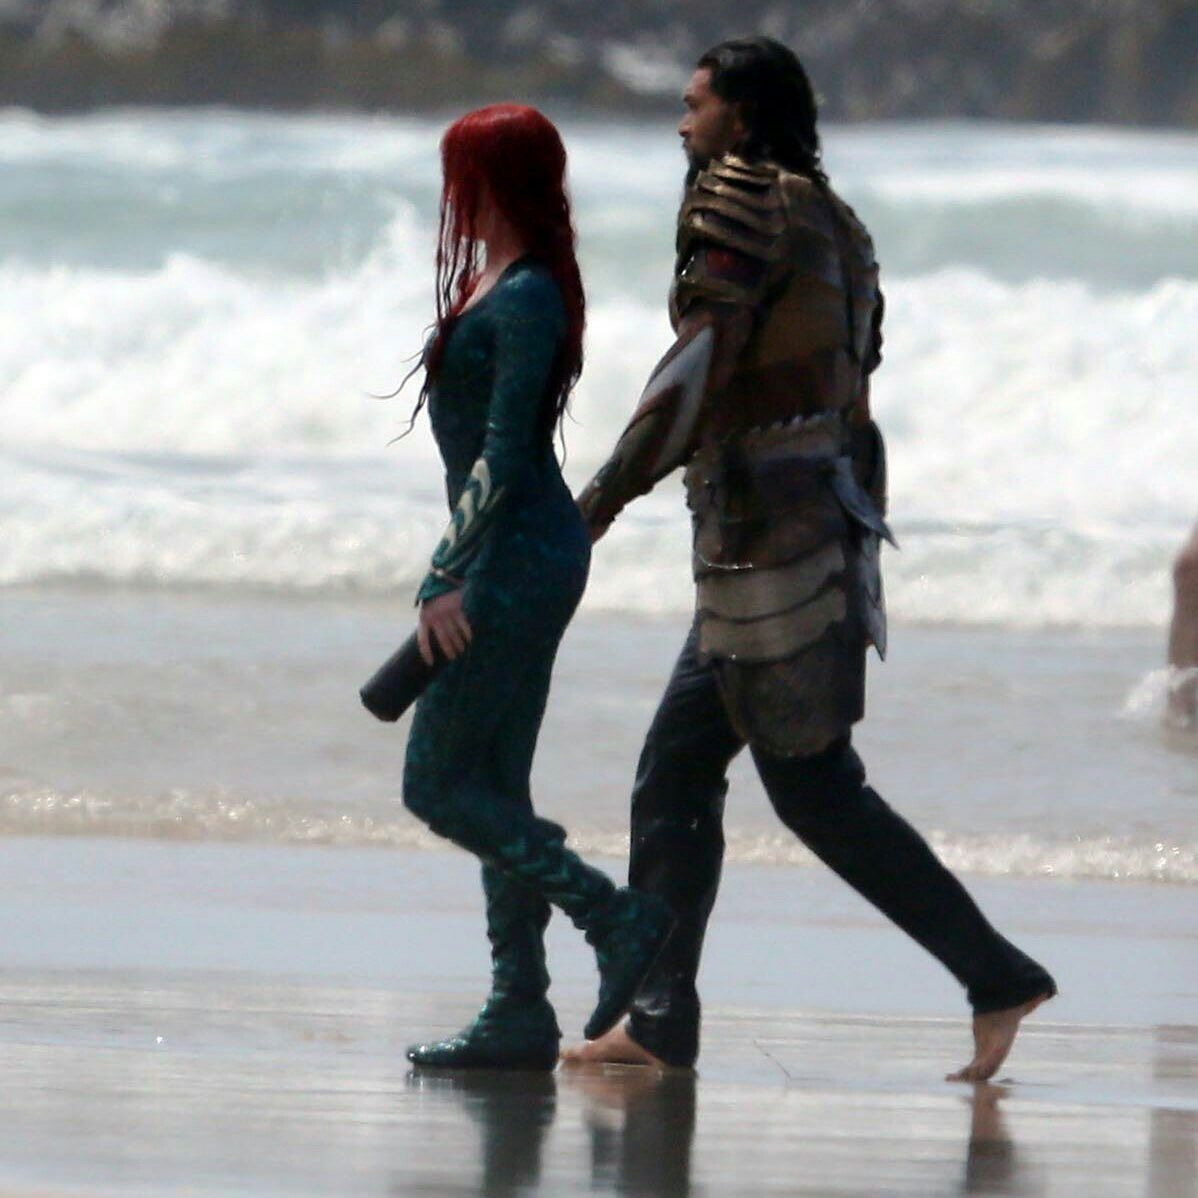 Amber Heard And Jason Momoa As Mera & Aquaman Filming